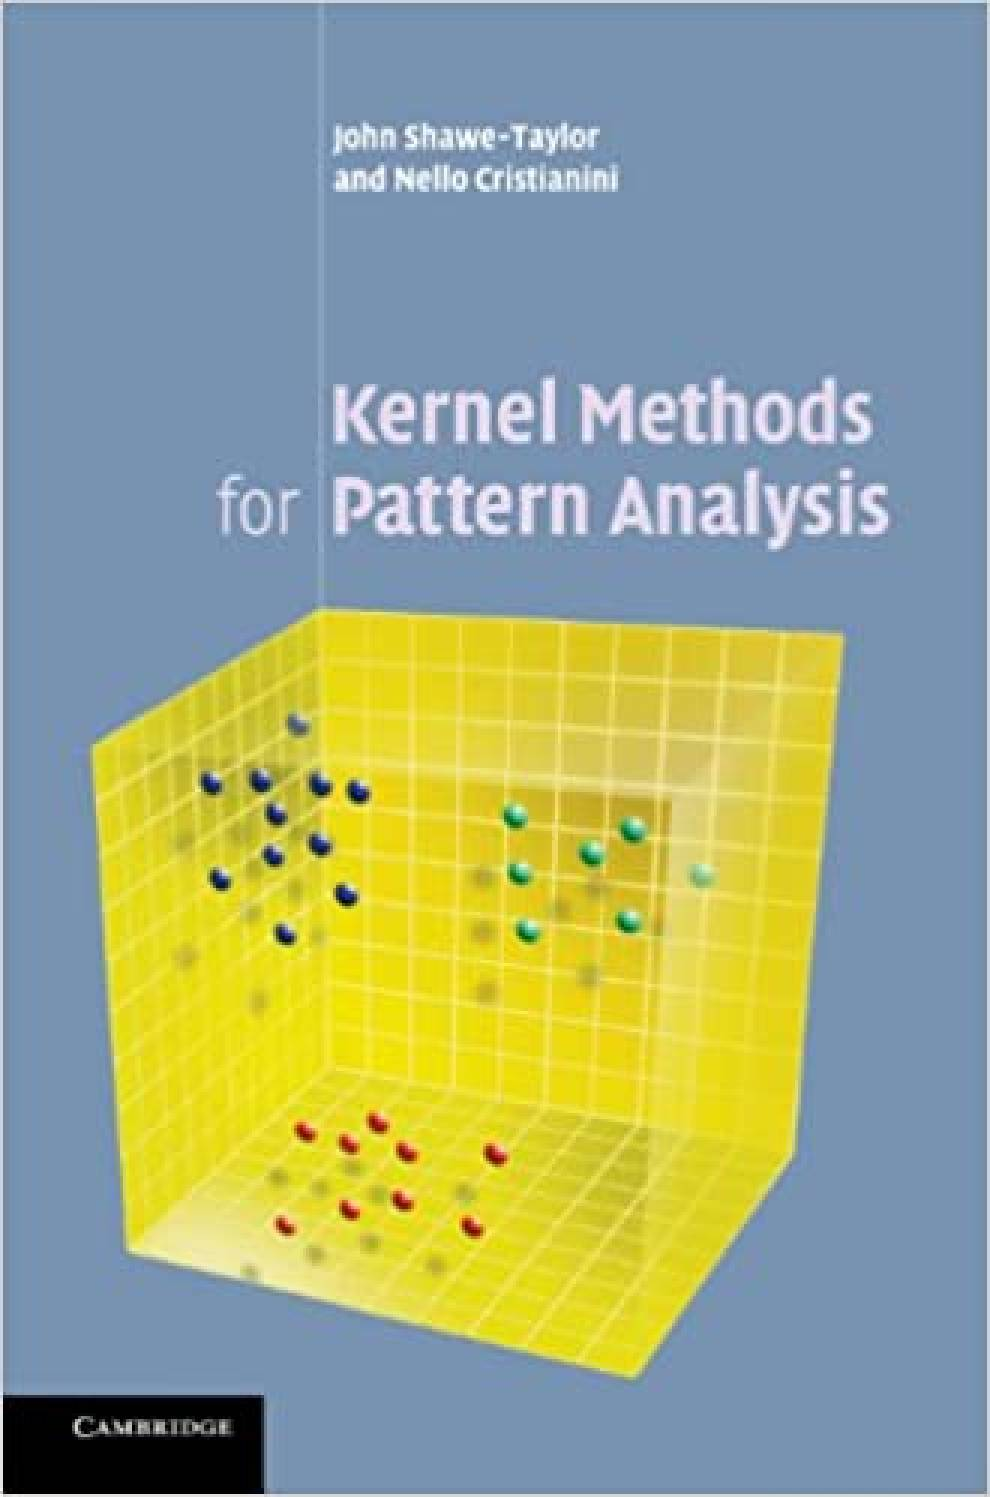 Kernel methods provide a powerful and unified framework for pattern discovery, motivating algorithms that can act on general types of data (e.g. strings, vectors or text) and look for general types of relations (e.g. rankings, classifications, regressions